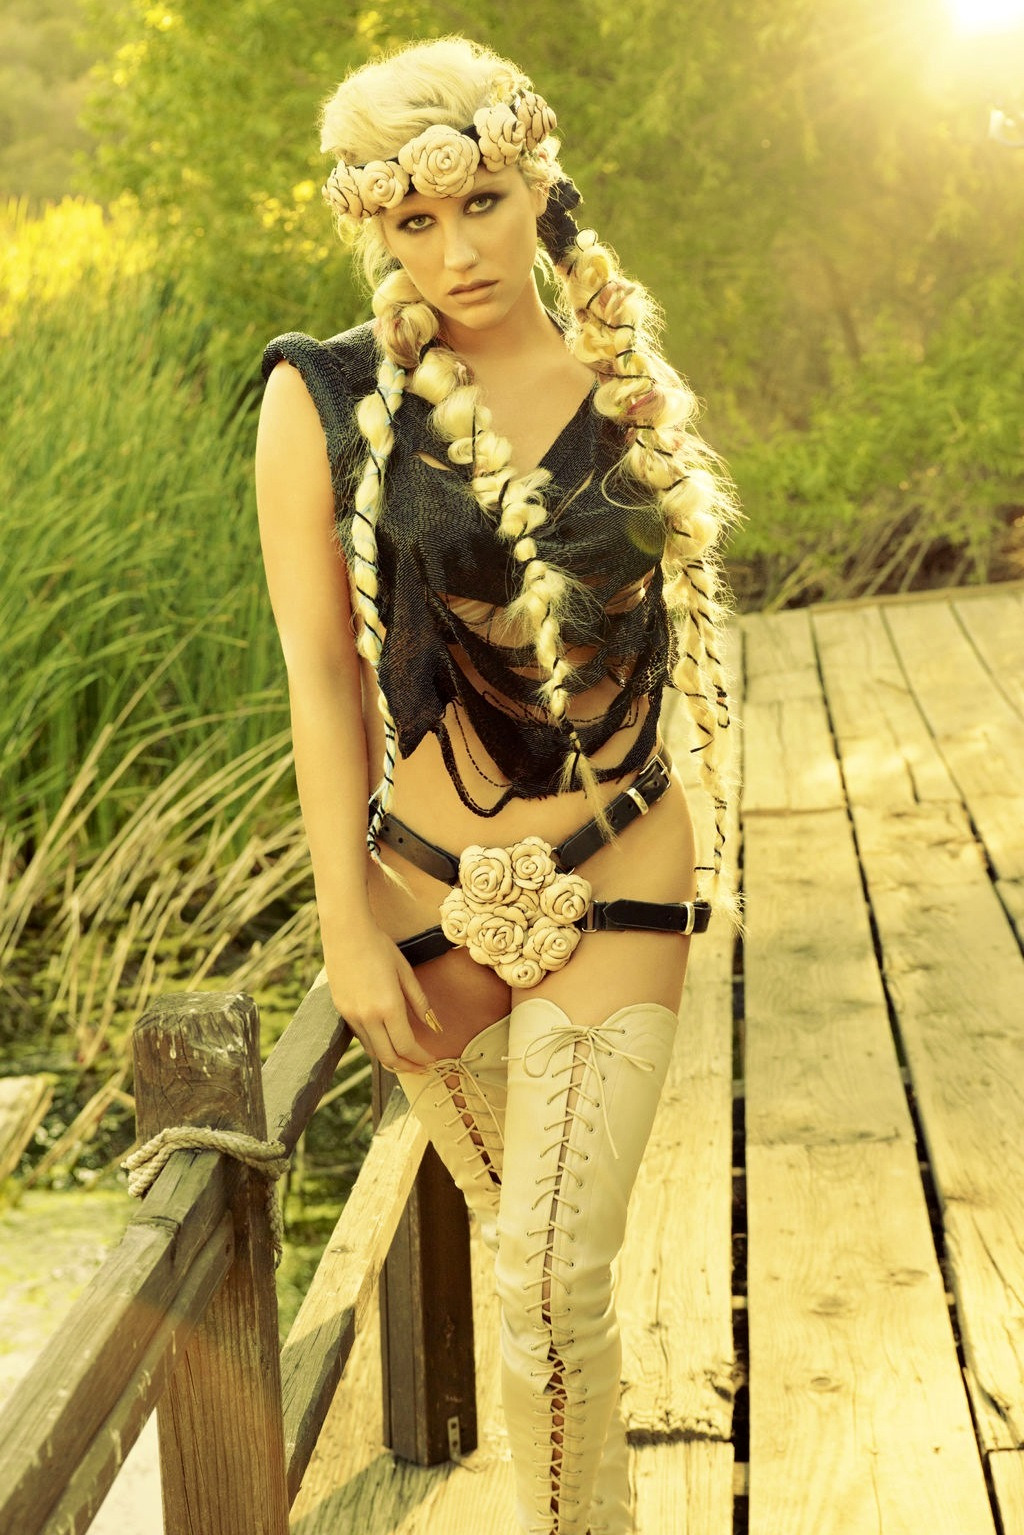 Ke$ha Photoshoot BTS Warrior